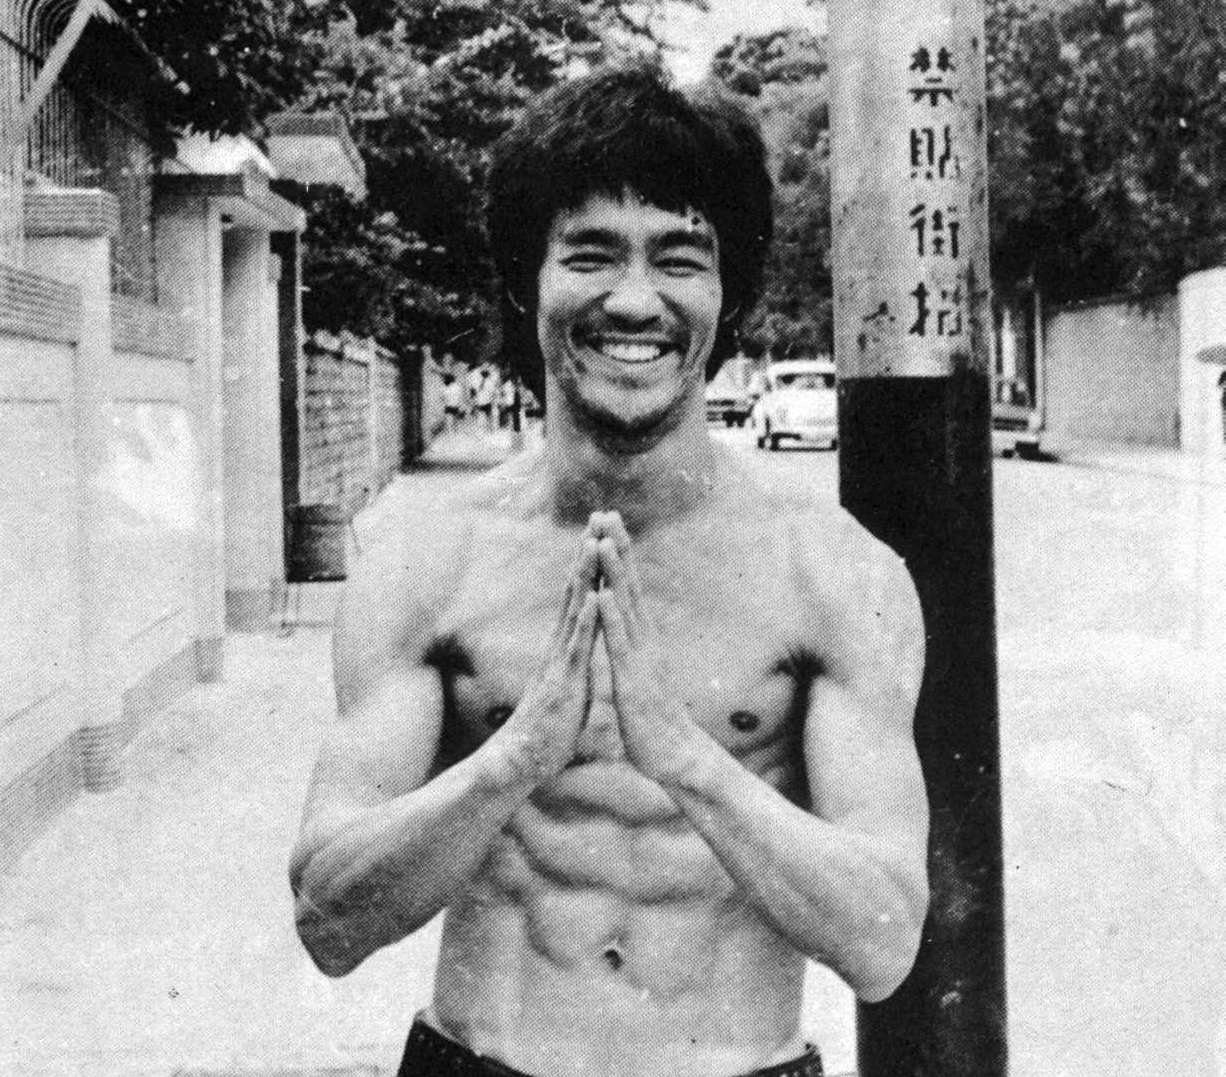 https://i0.wp.com/www.blackbeltforums.com/attachments/bruce-lee-jpg.806/